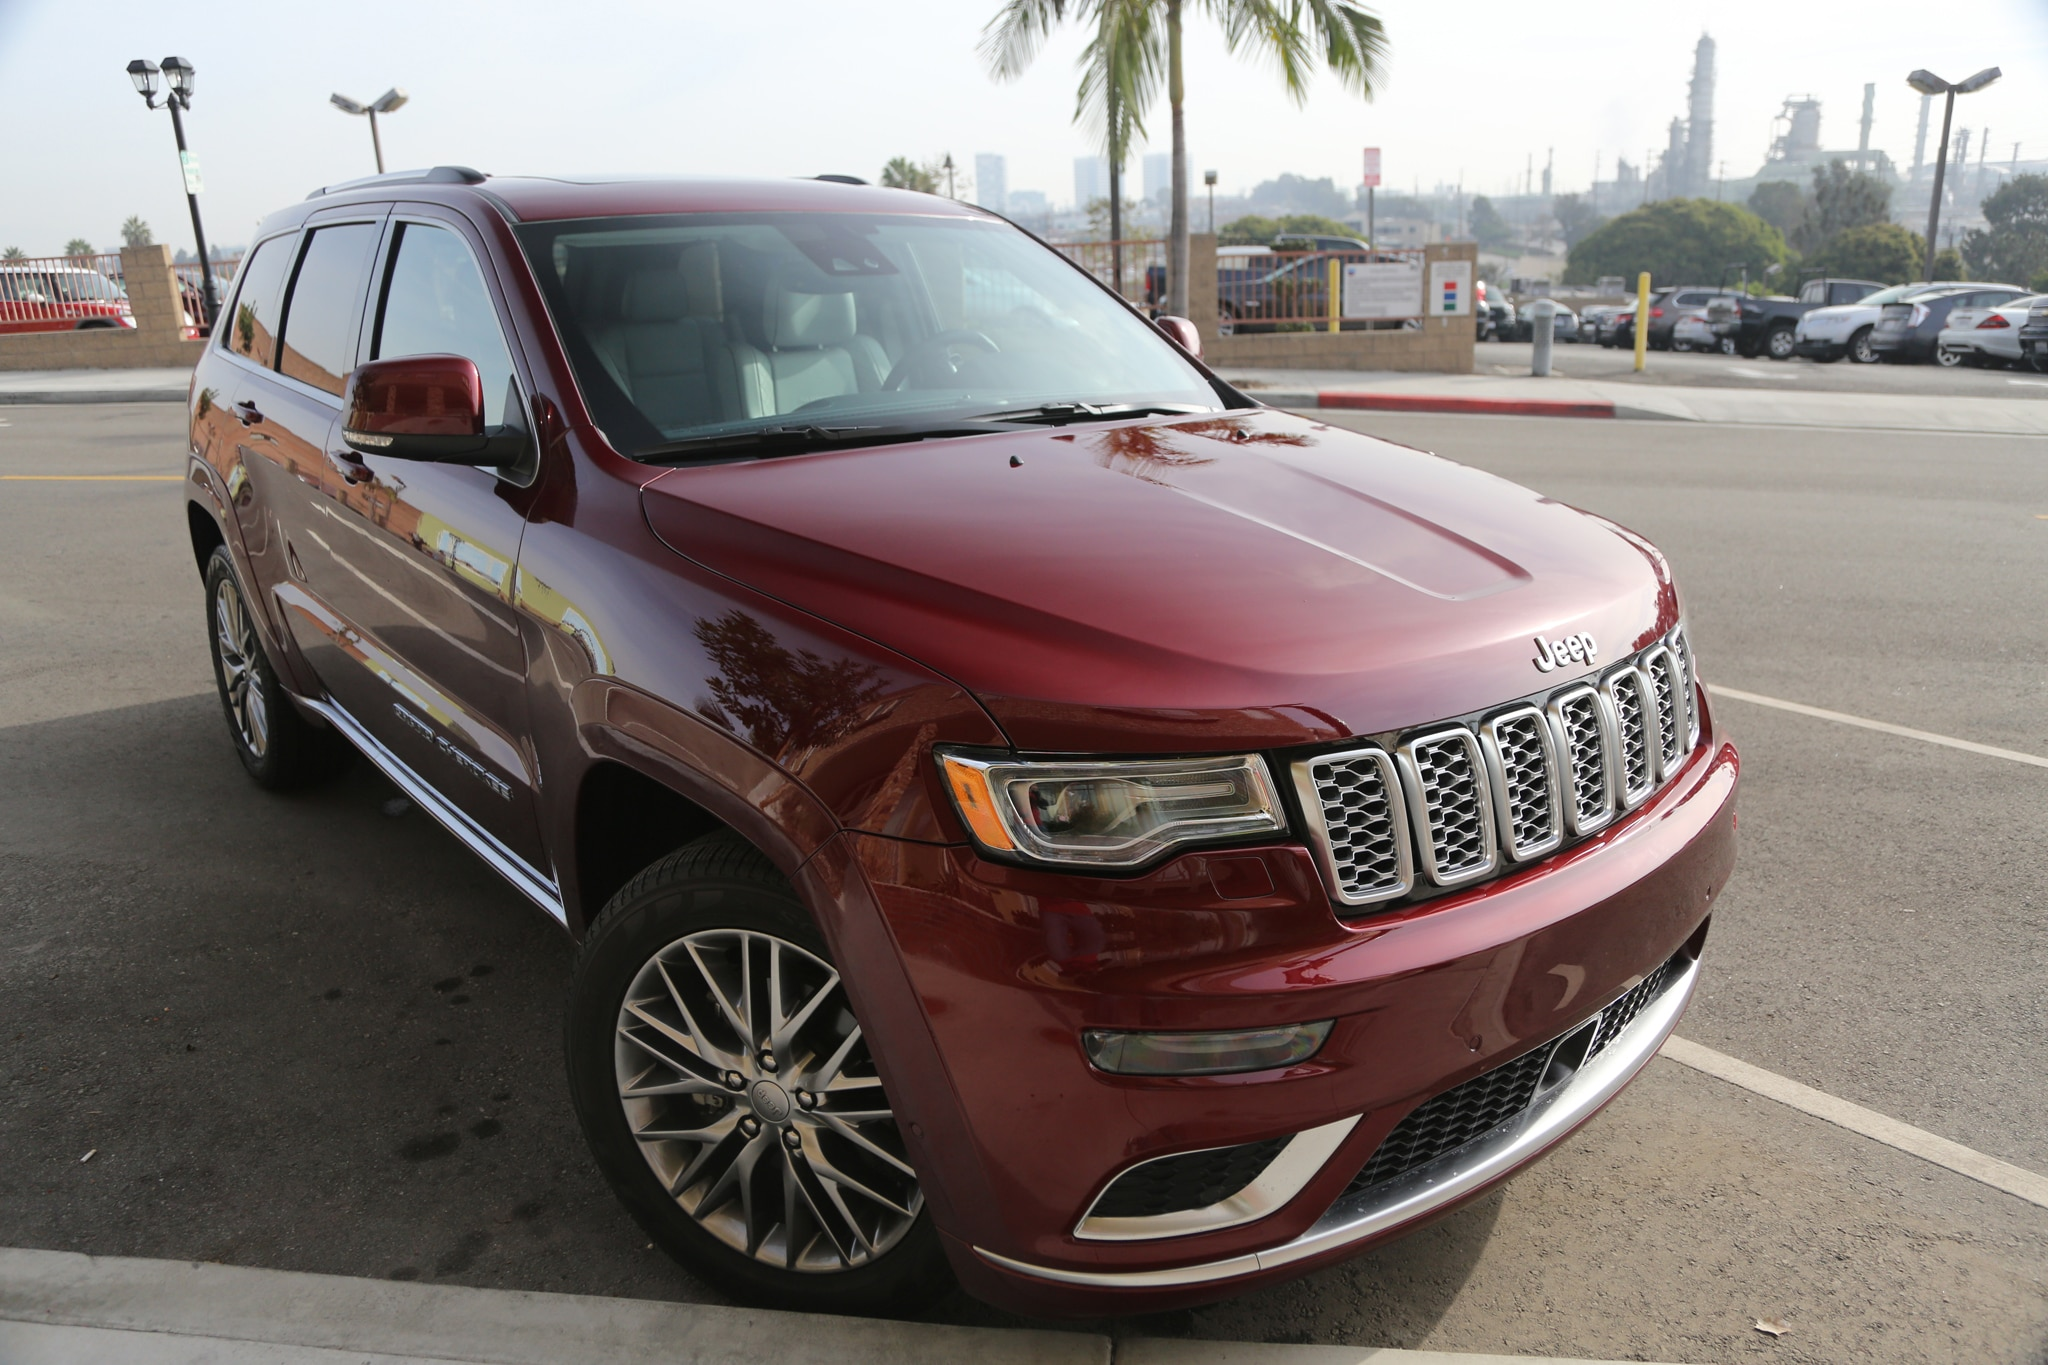 2017 Jeep Grand Cherokee Front Three Quarter 07